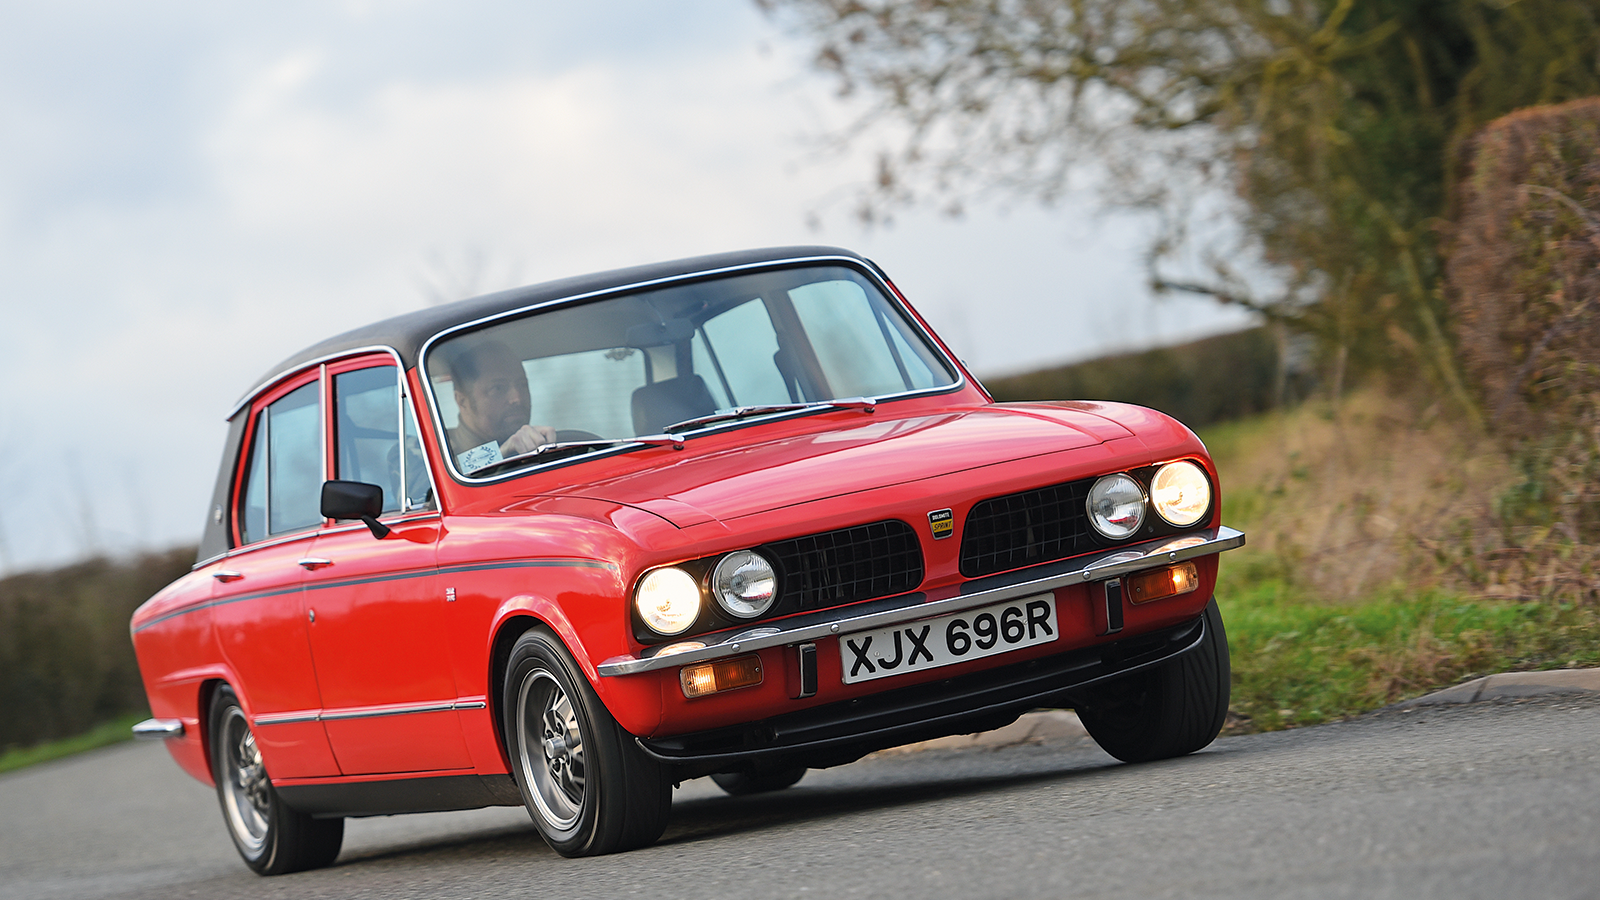 20 classic cars you can use as daily drivers